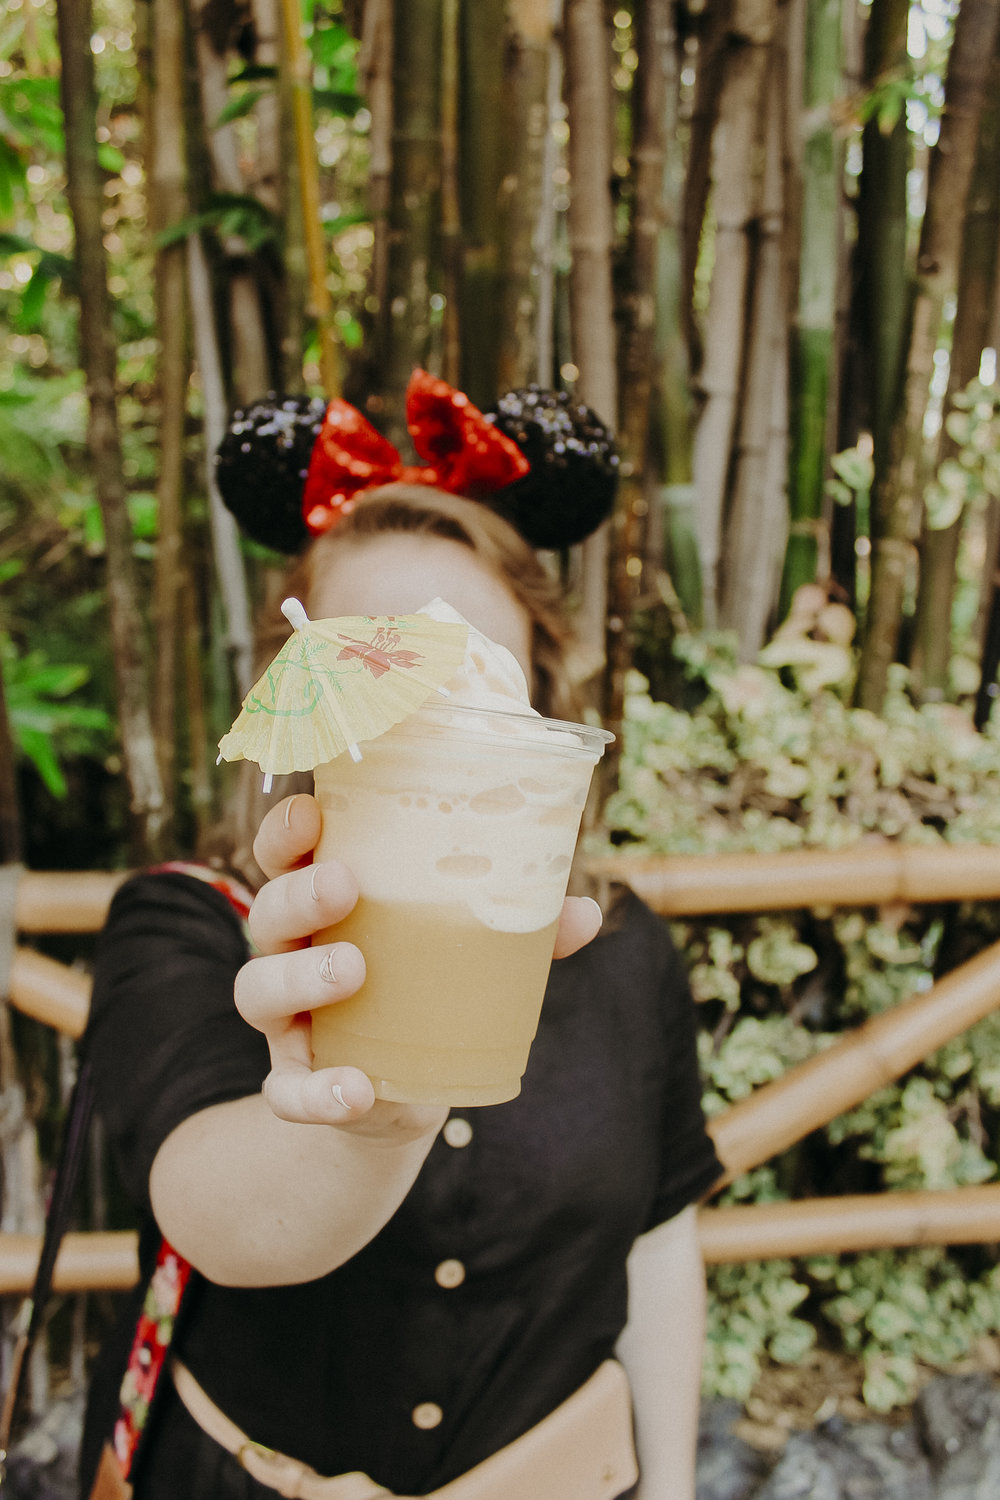 Disneyland-Travel-Diary-9.jpg